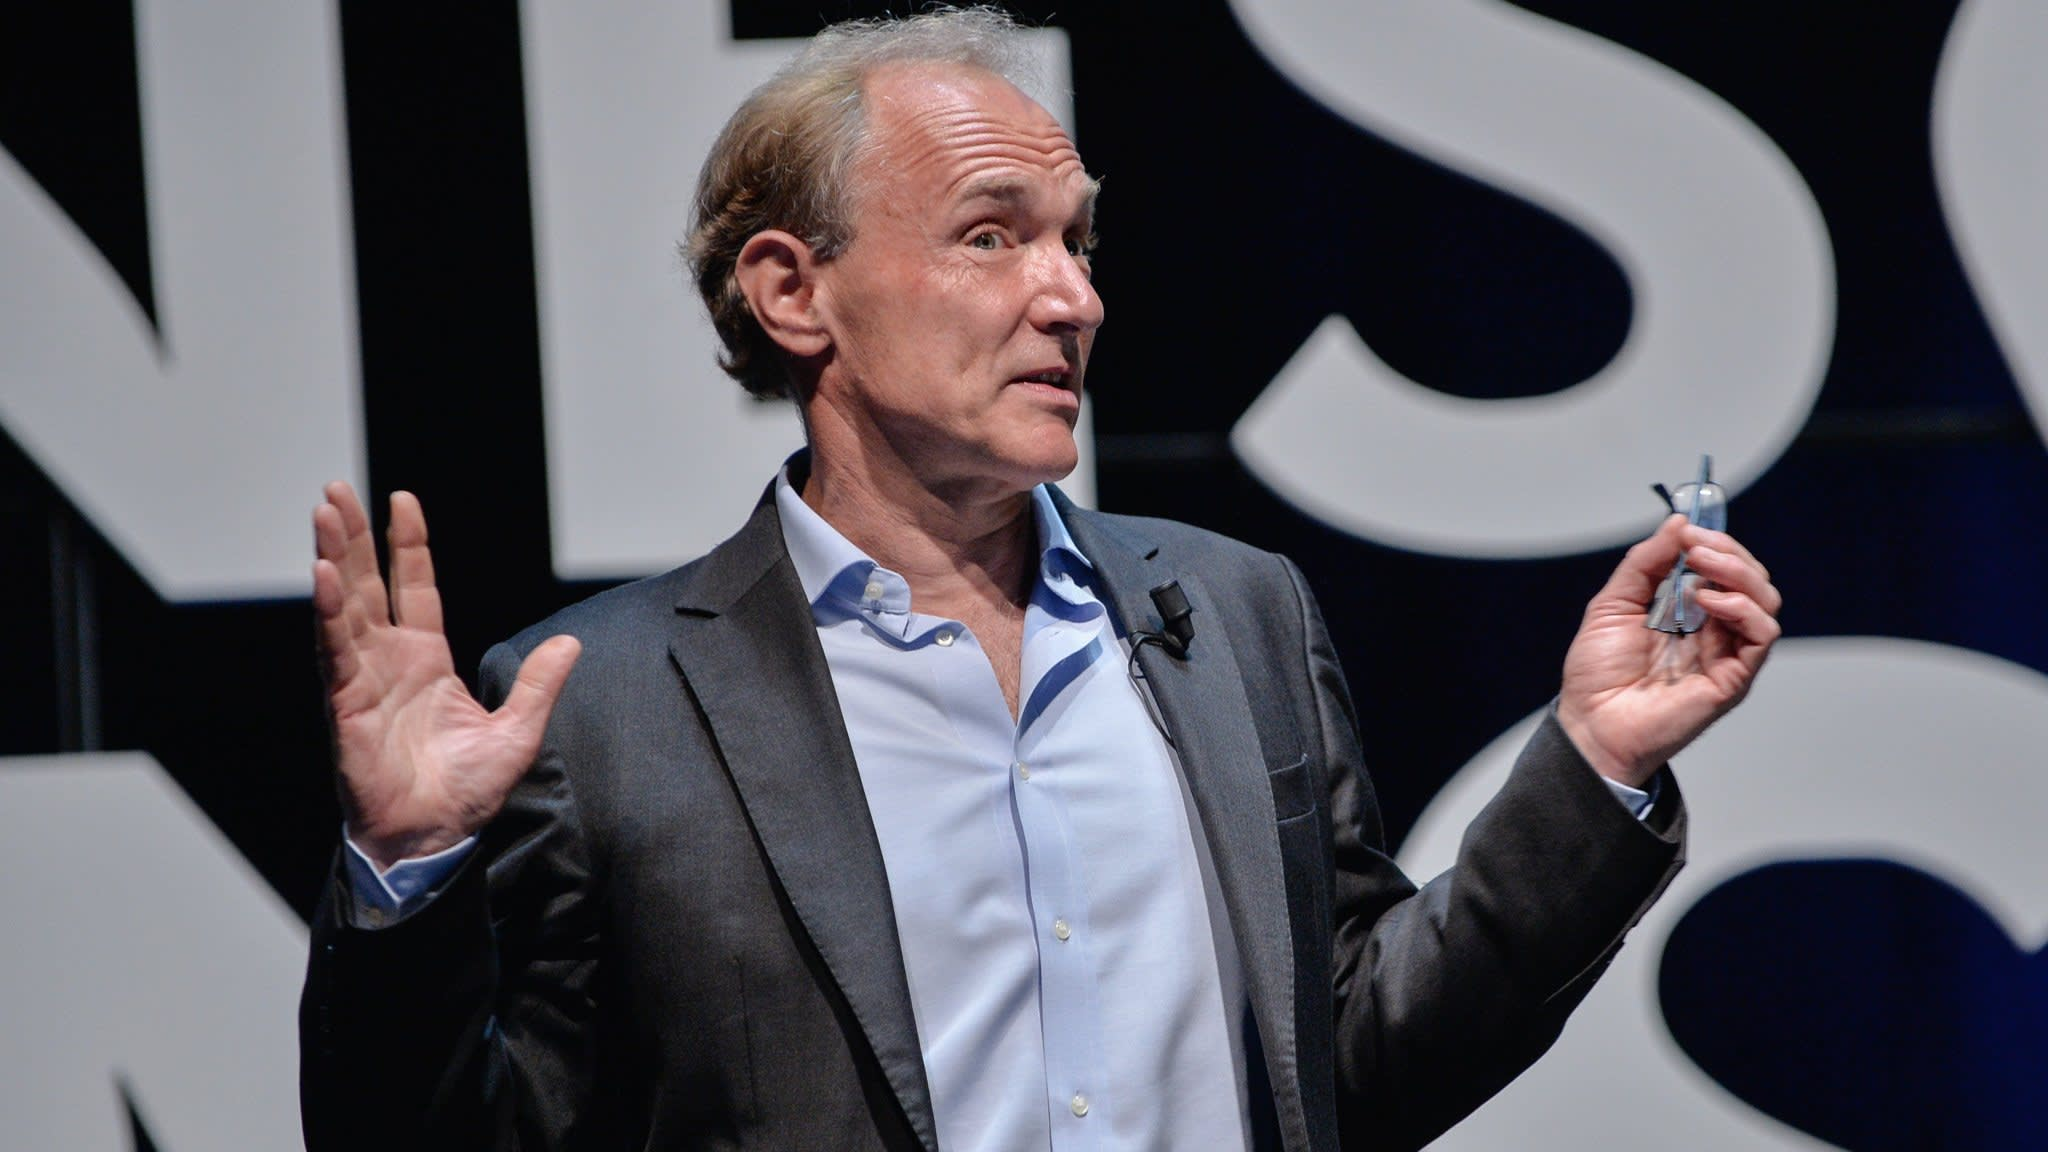 Sir Tim Berners-Lee hits out at big tech companies